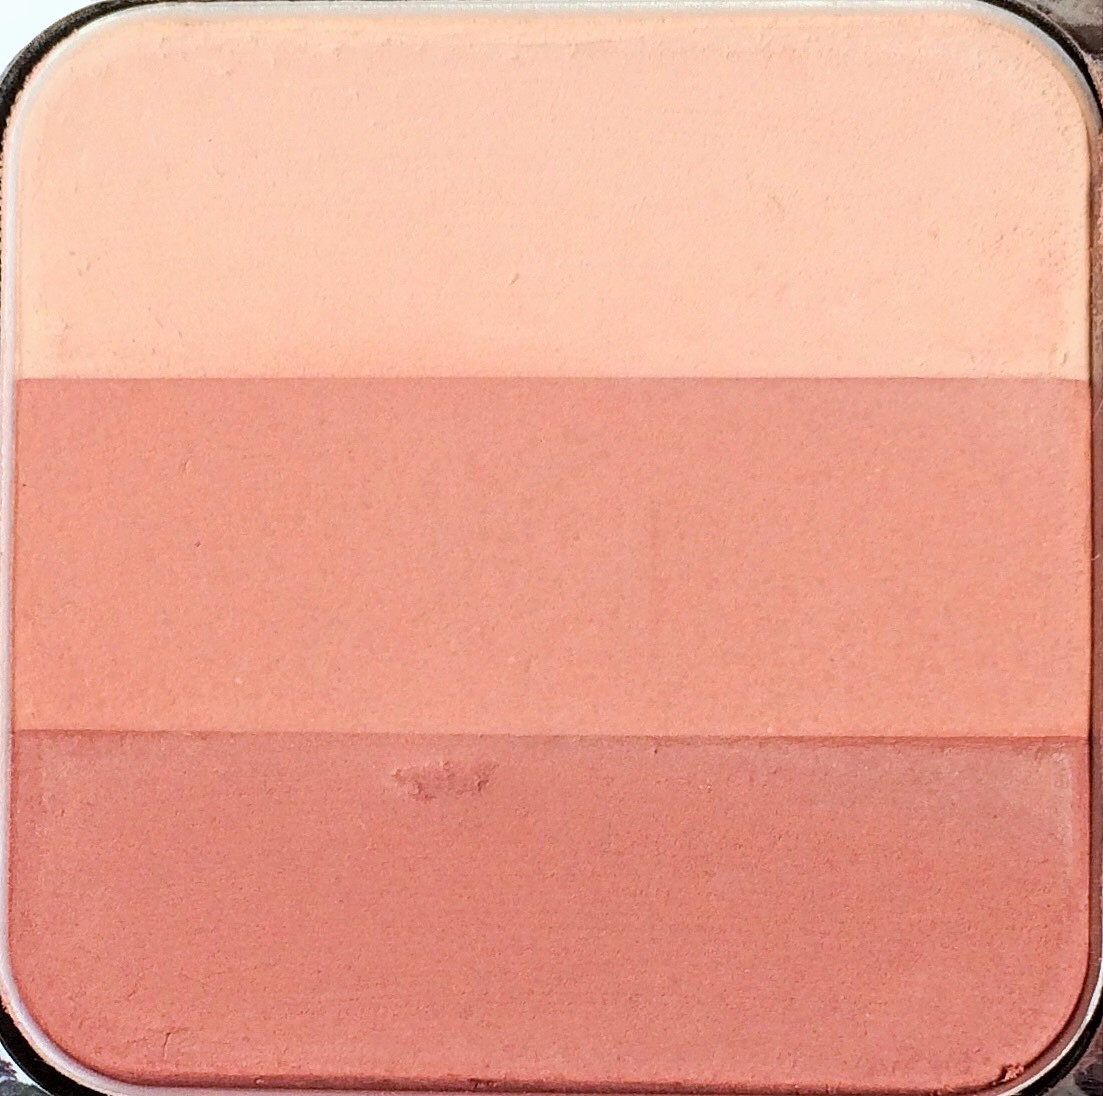 Kiko Shade Fushion Blush Trio Review and Swatches (4)